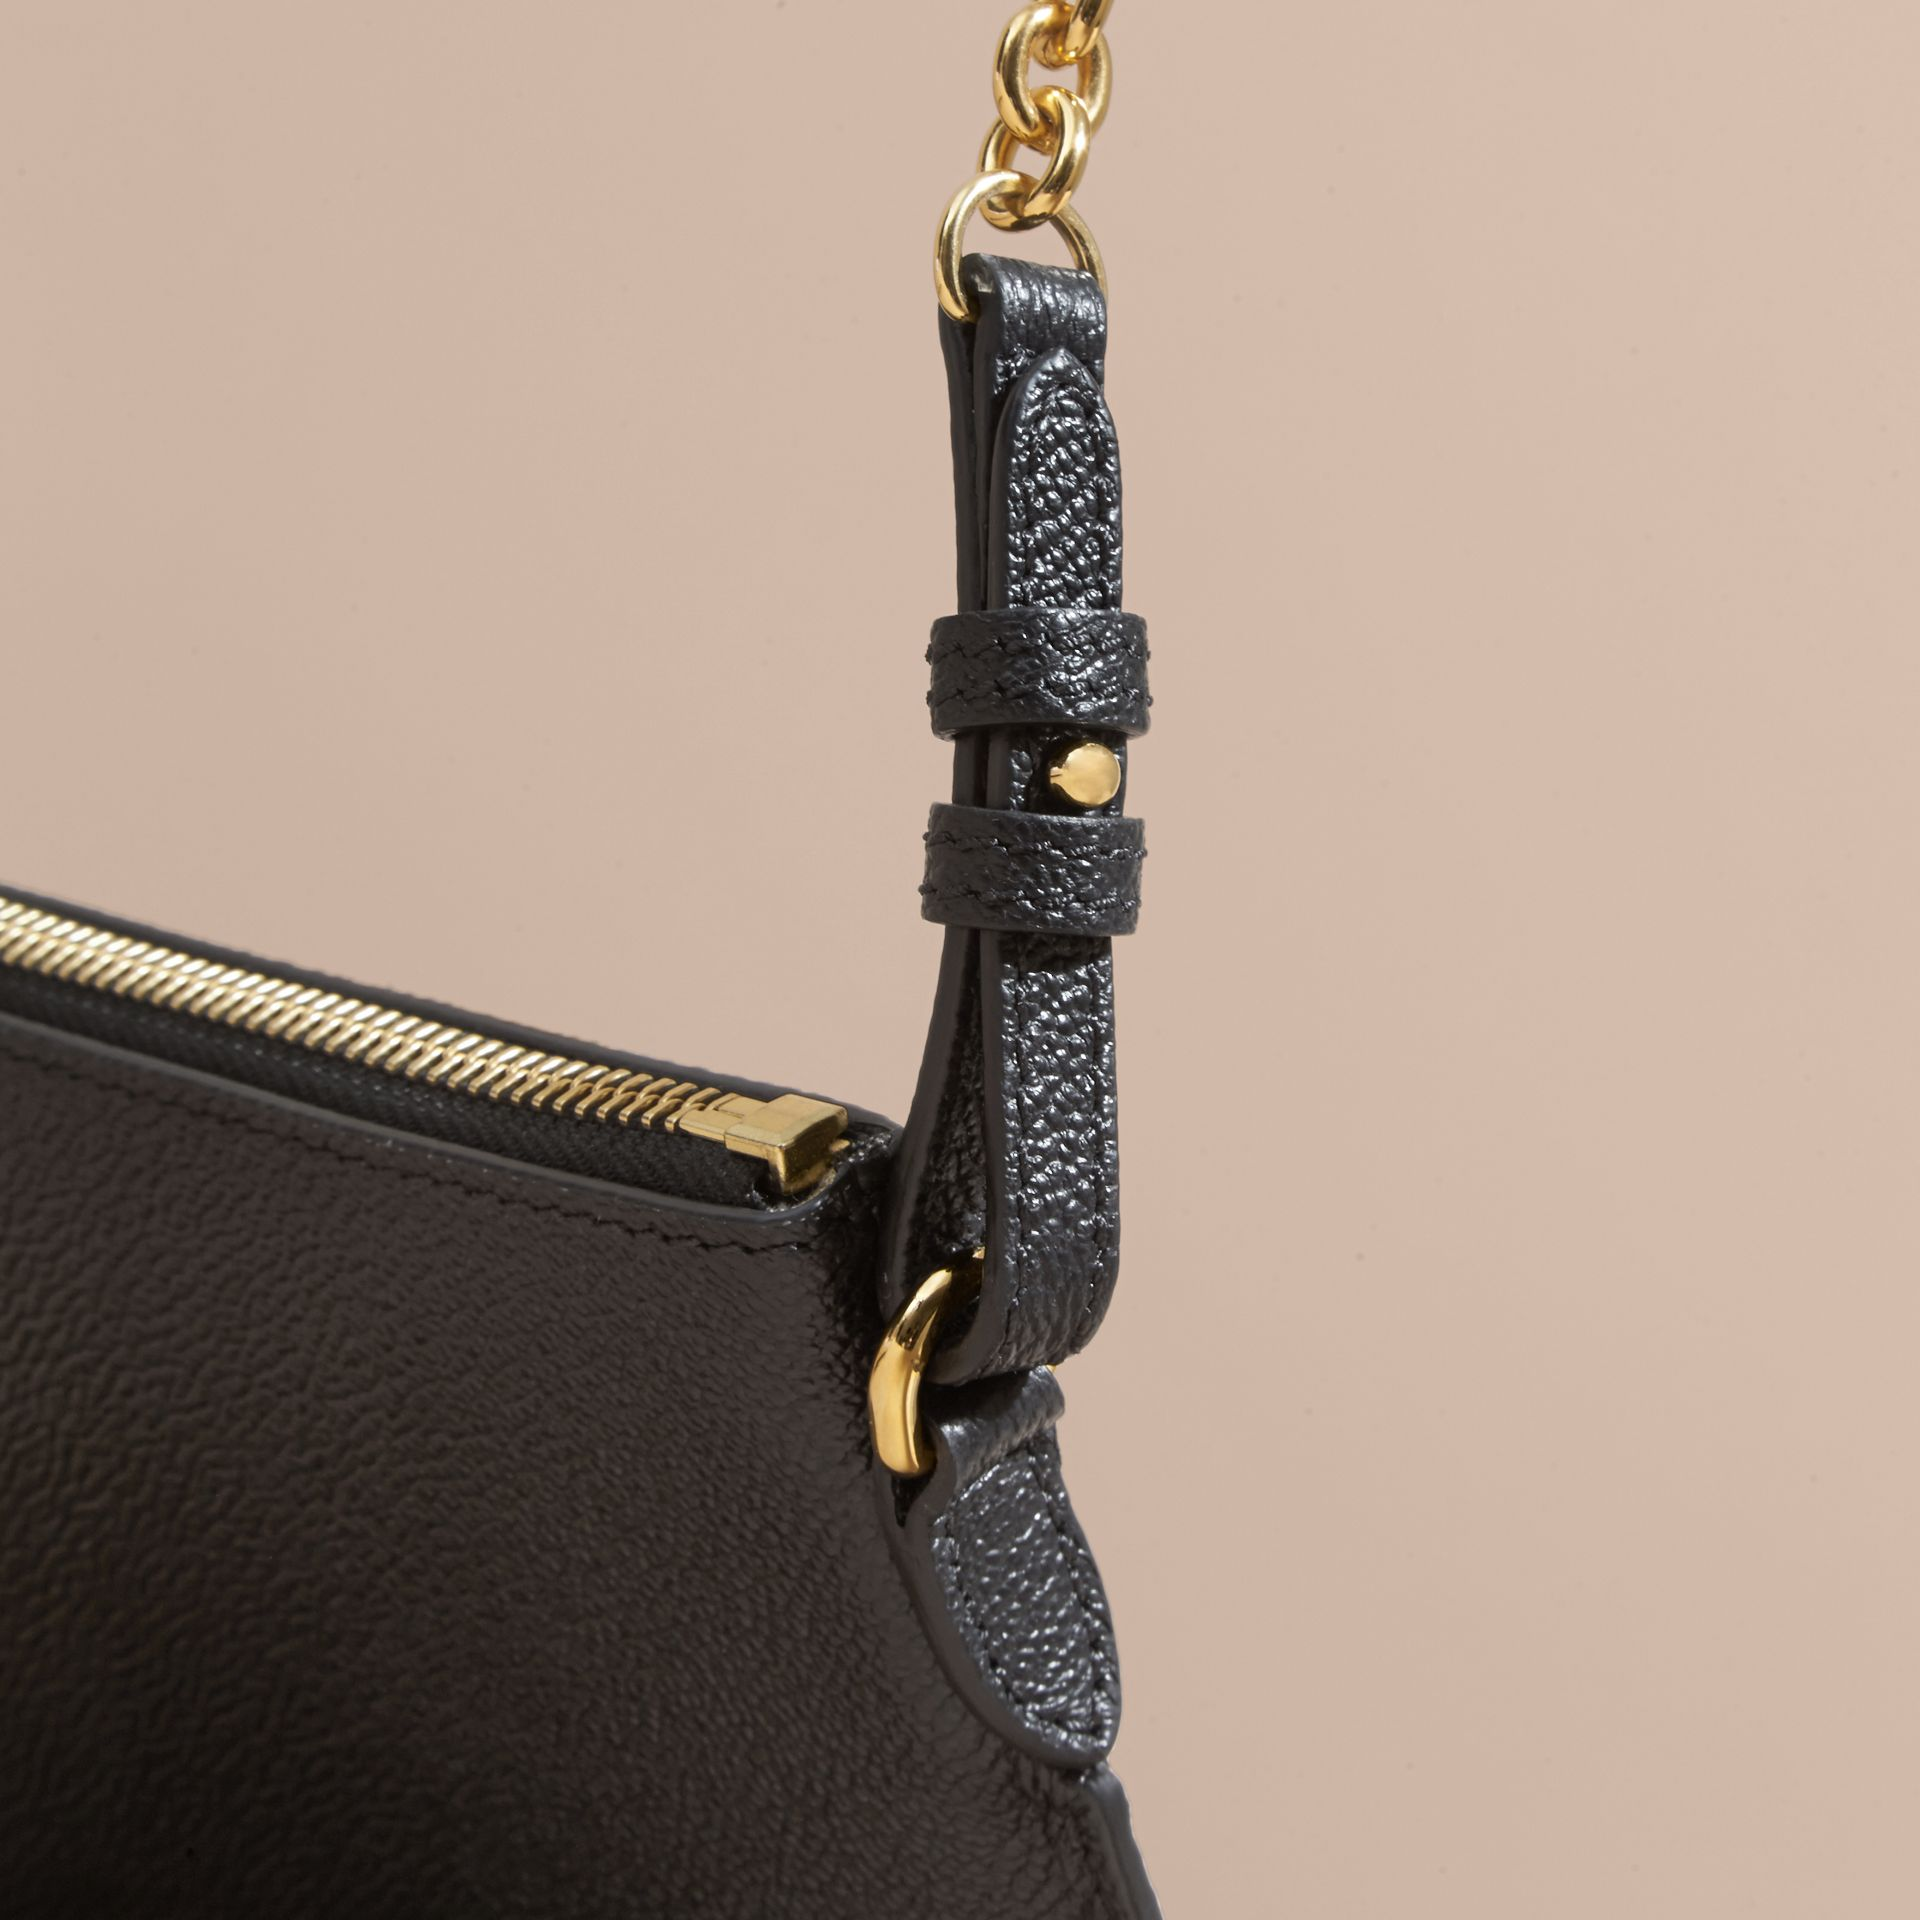 Leather Clutch Bag with Check Lining in Black - Women | Burberry - gallery image 7